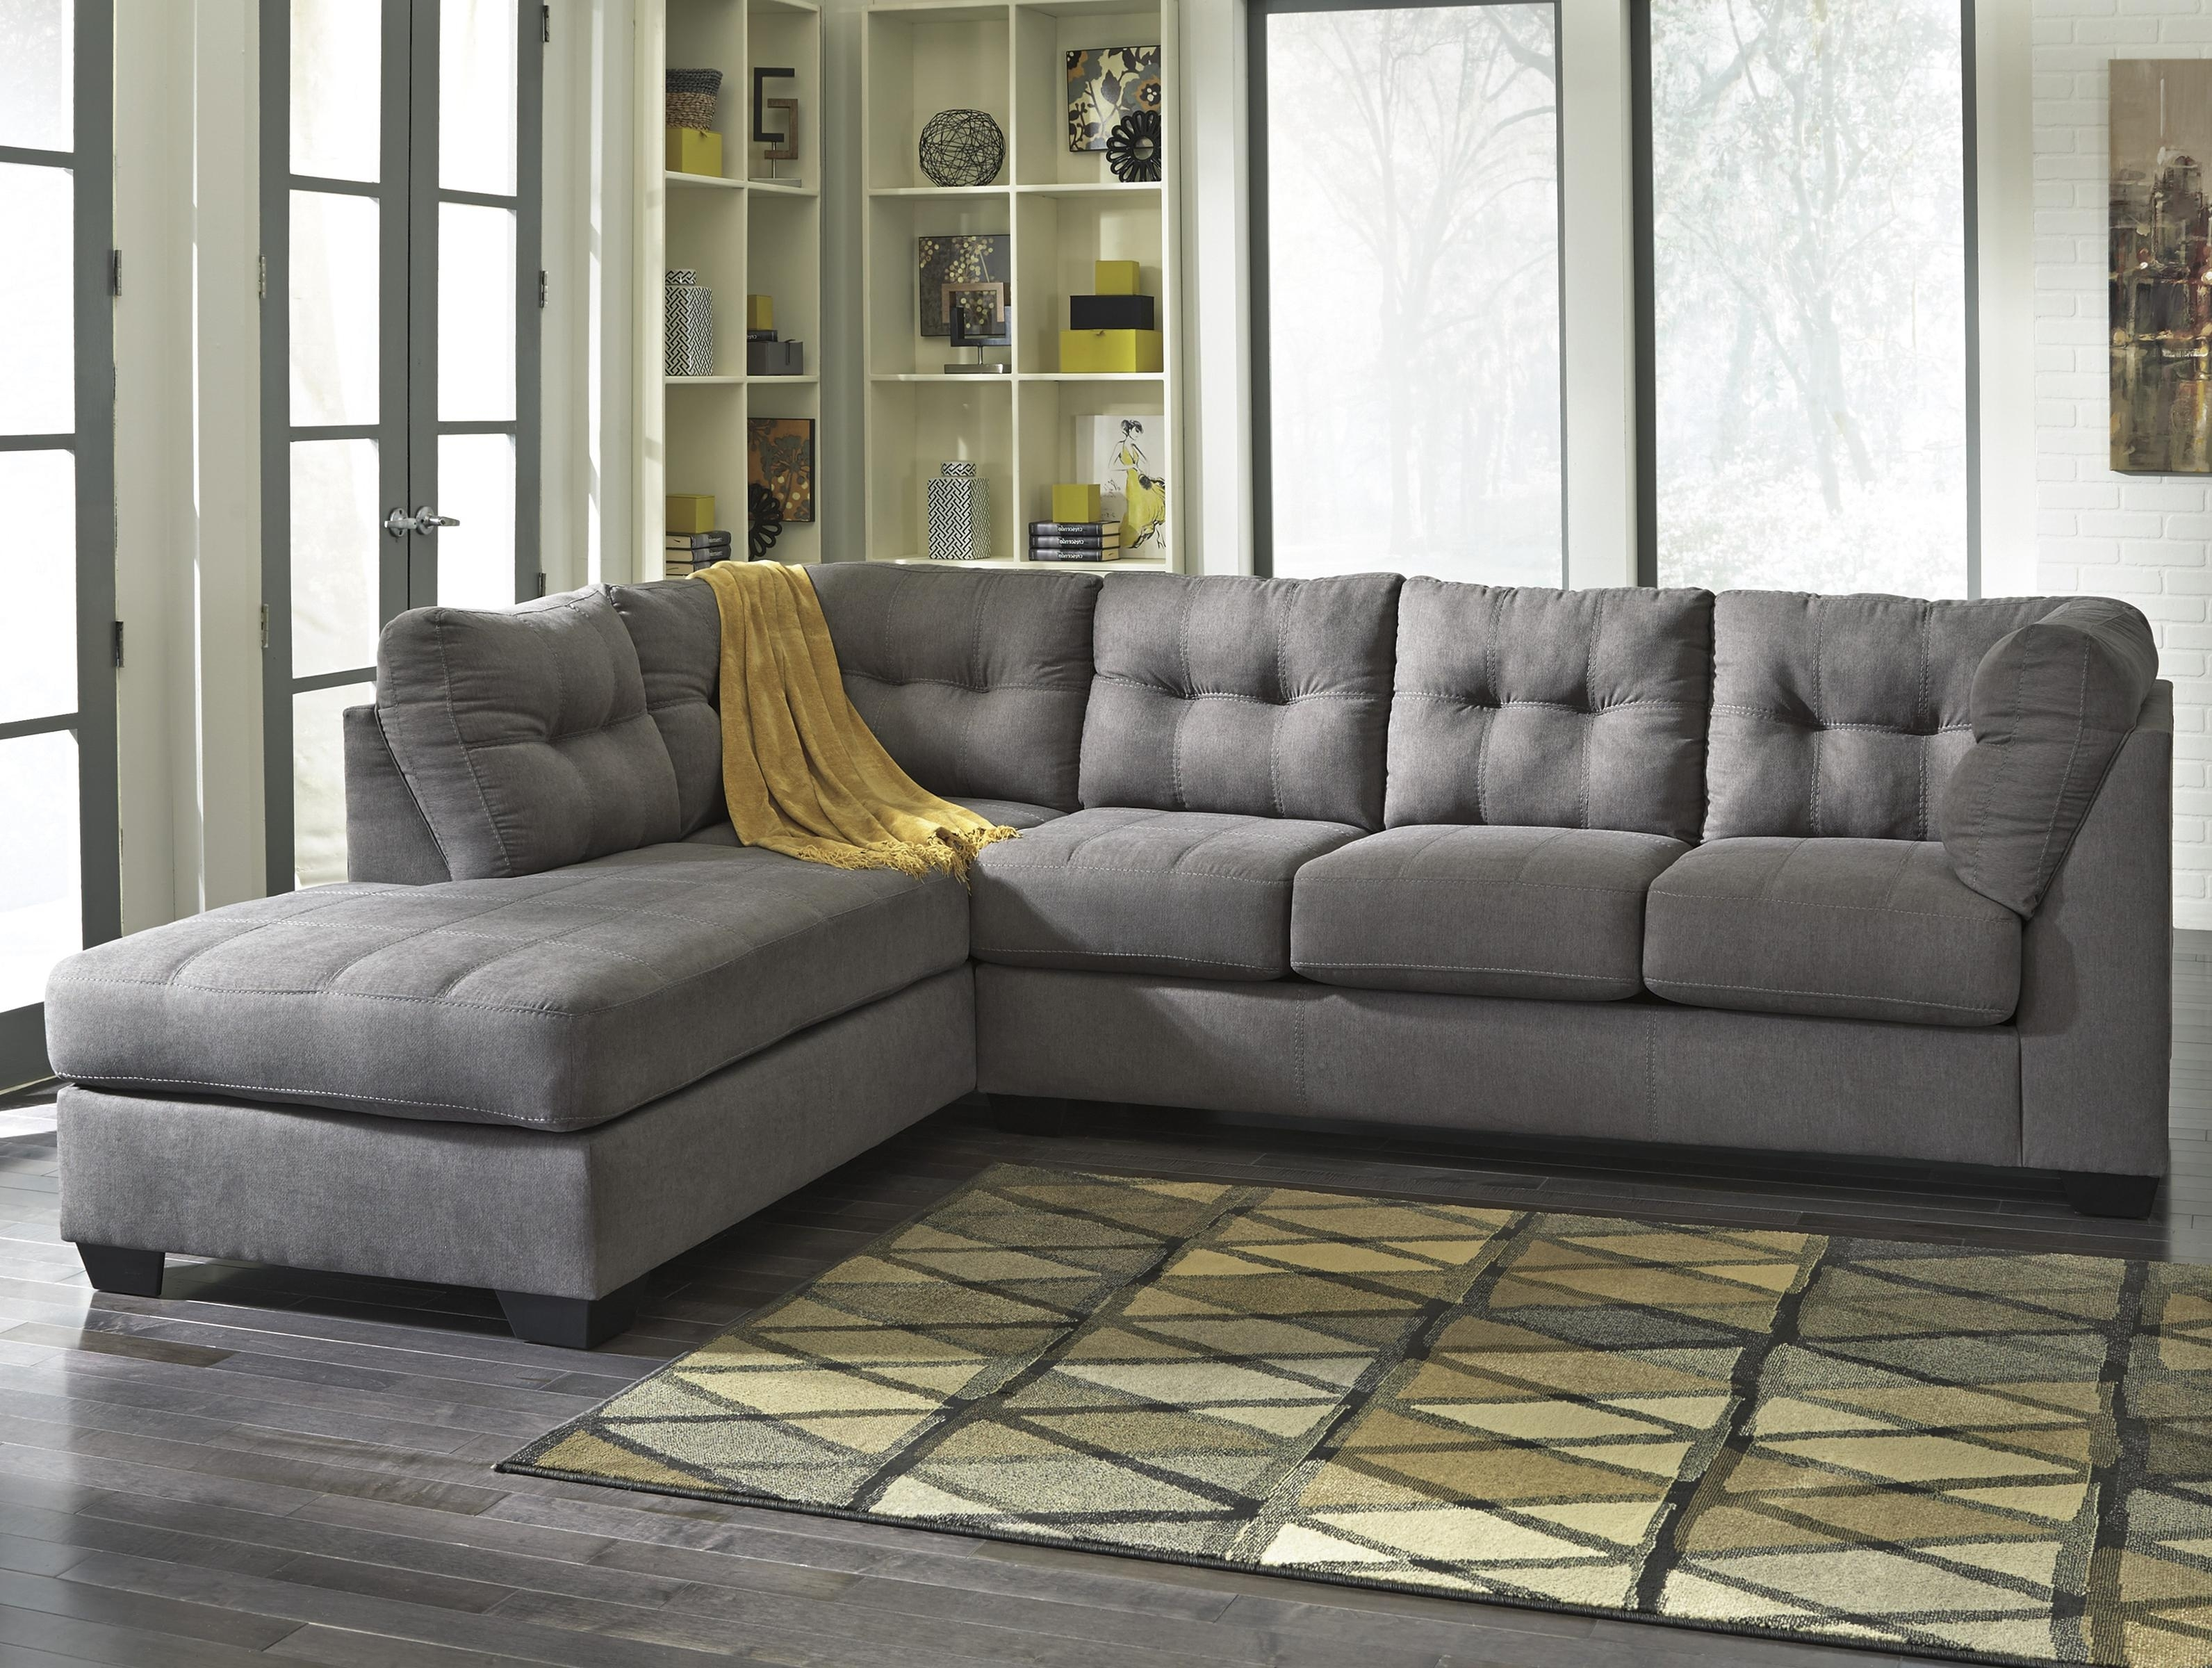 Choosing 2 Piece Sectional Sofa - Elites Home Decor intended for Delano 2 Piece Sectionals With Laf Oversized Chaise (Image 10 of 30)